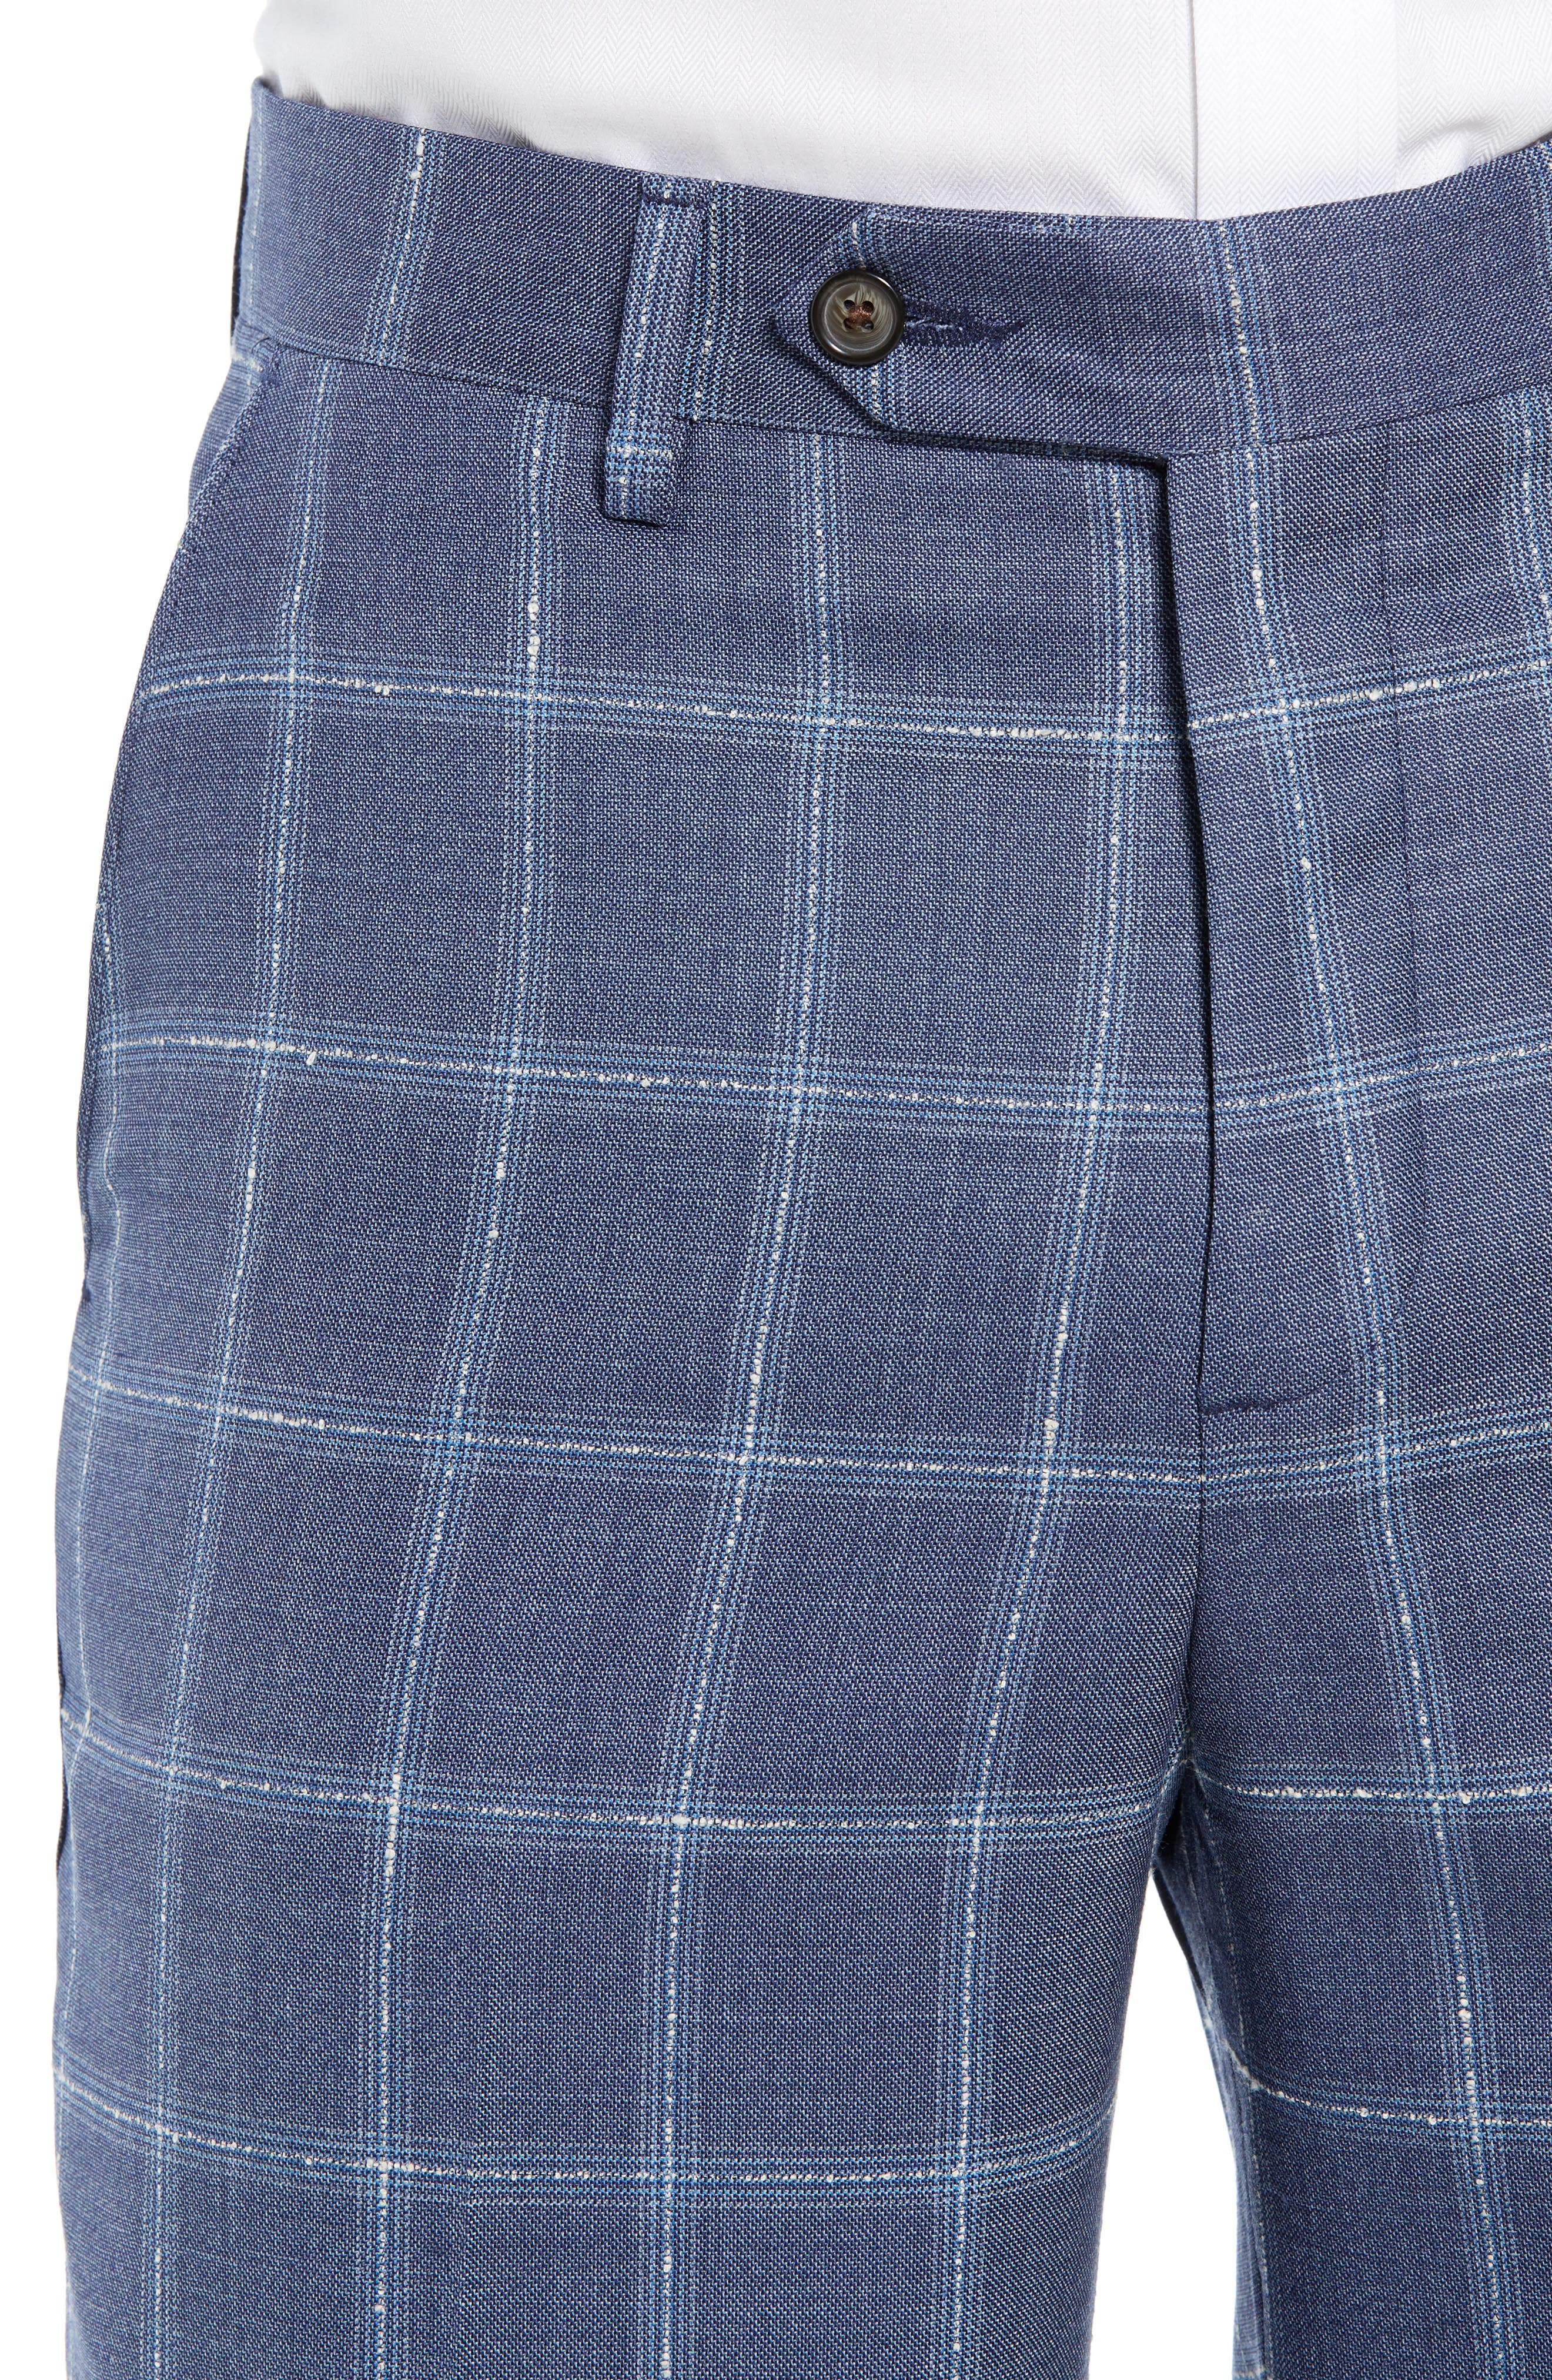 Manufacturing Flat Front Plaid Wool Trousers,                             Alternate thumbnail 4, color,                             NAVY